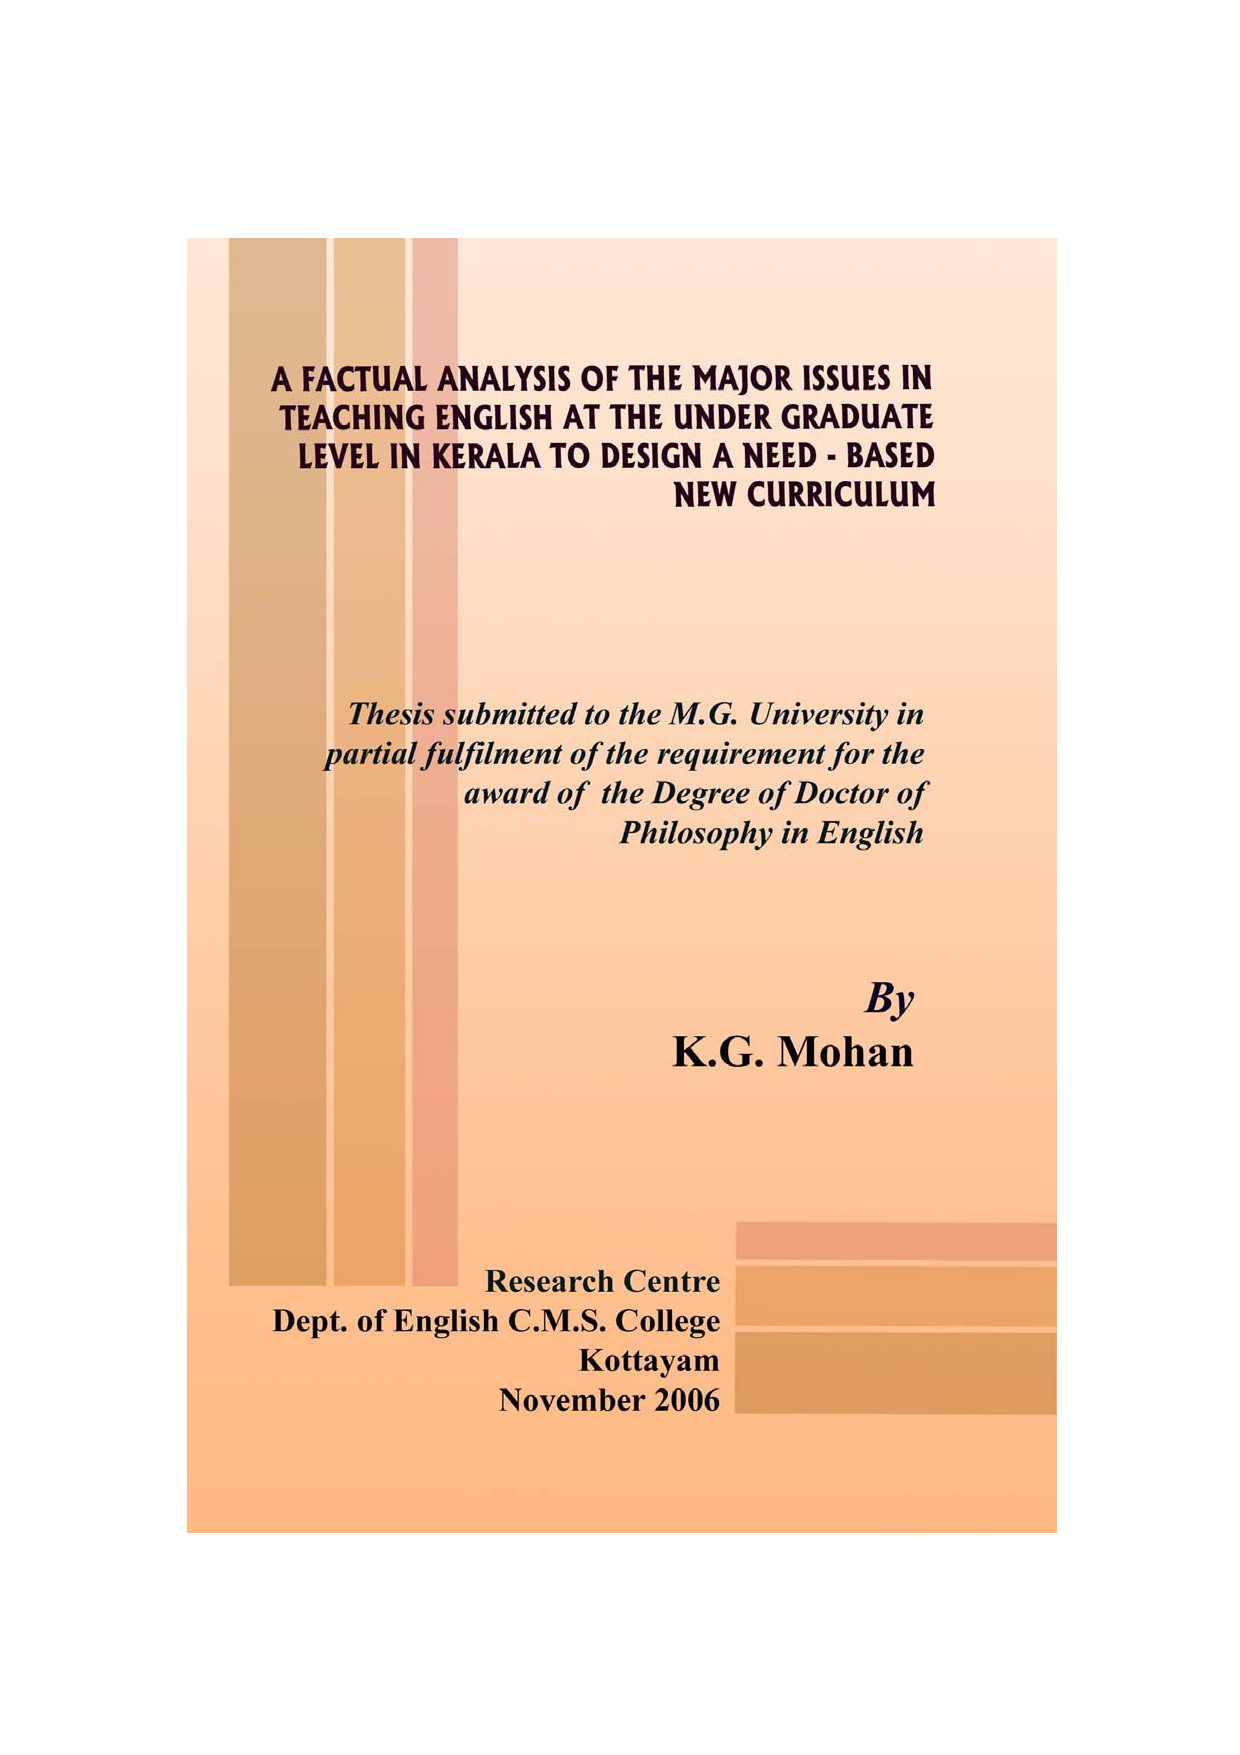 thesis for english teaching Master thesis in english language teachingbuying papers online collegeproposal and dissertation help quantity surveyingbuy thesis paper.